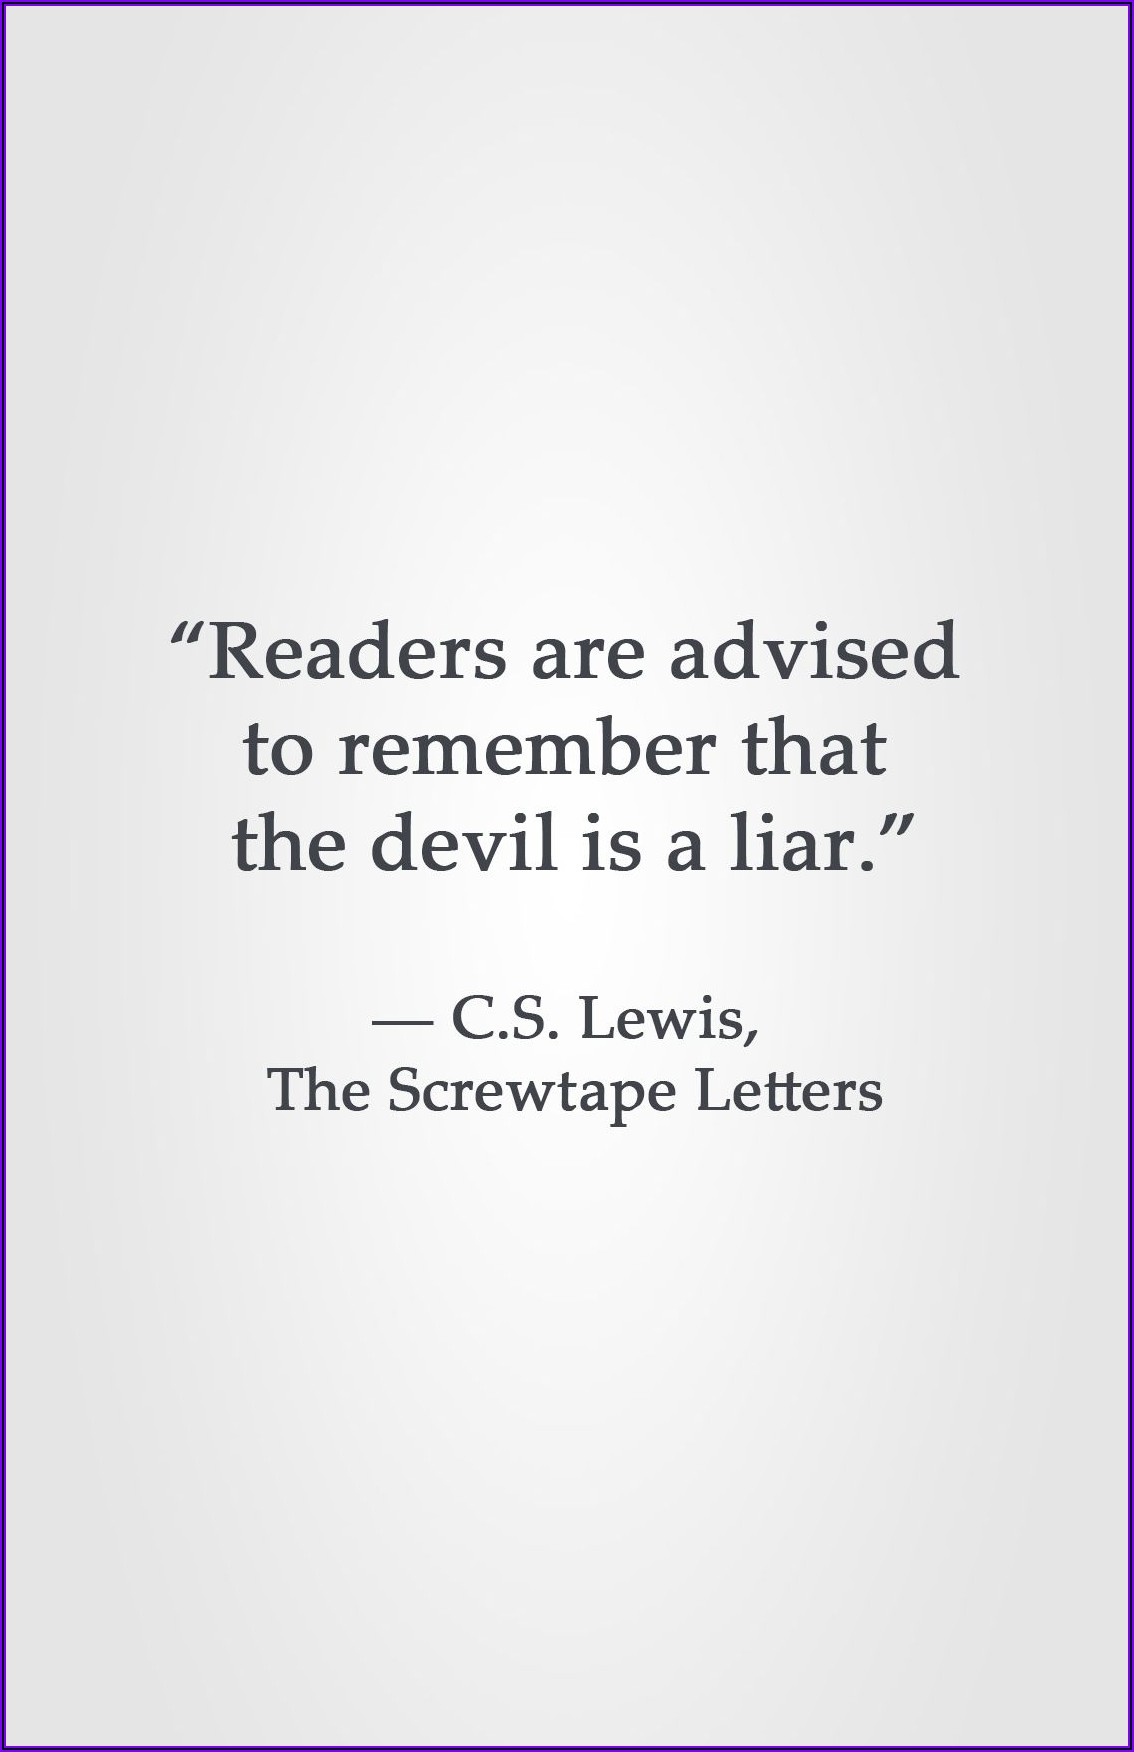 The Screwtape Letters Quotes I Will Cause Anxiety